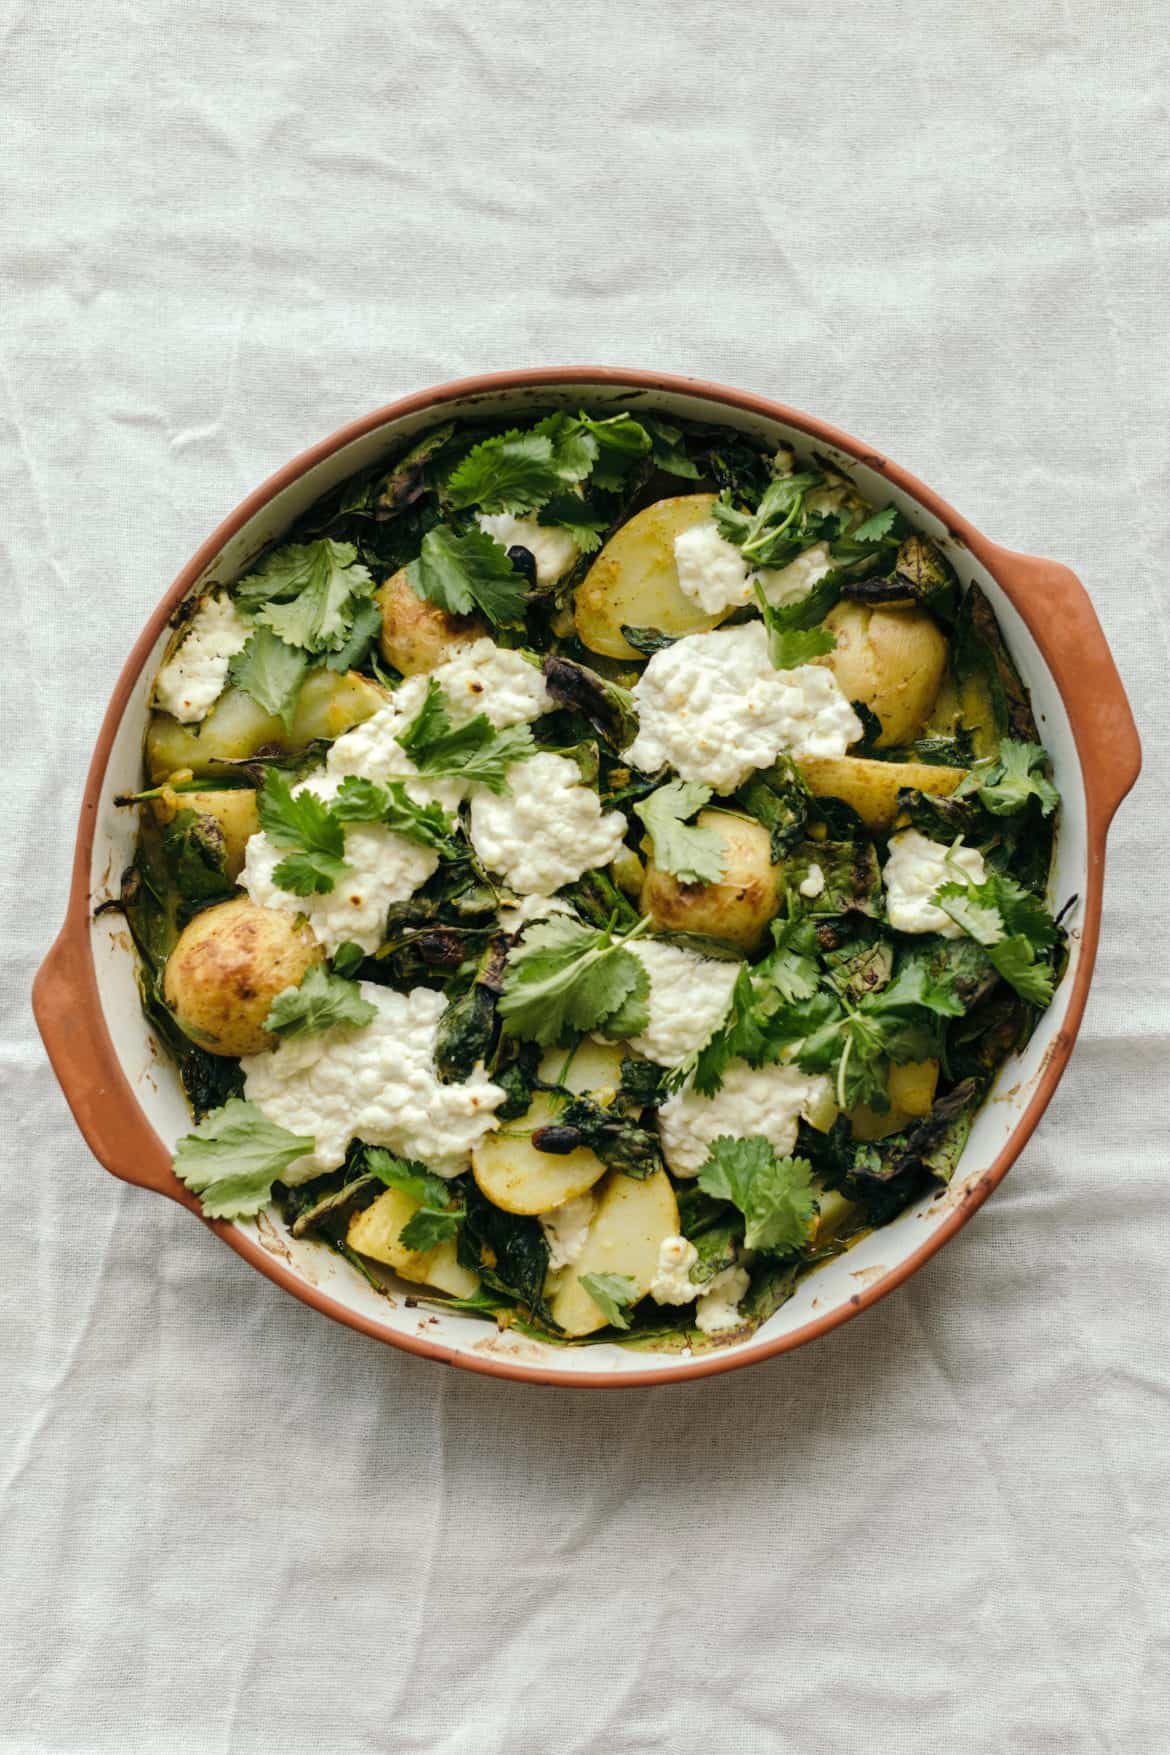 Saag Aloo Paneer Recipe (Curried Spinach, Potatoe, and Indian Cheese Recipe)